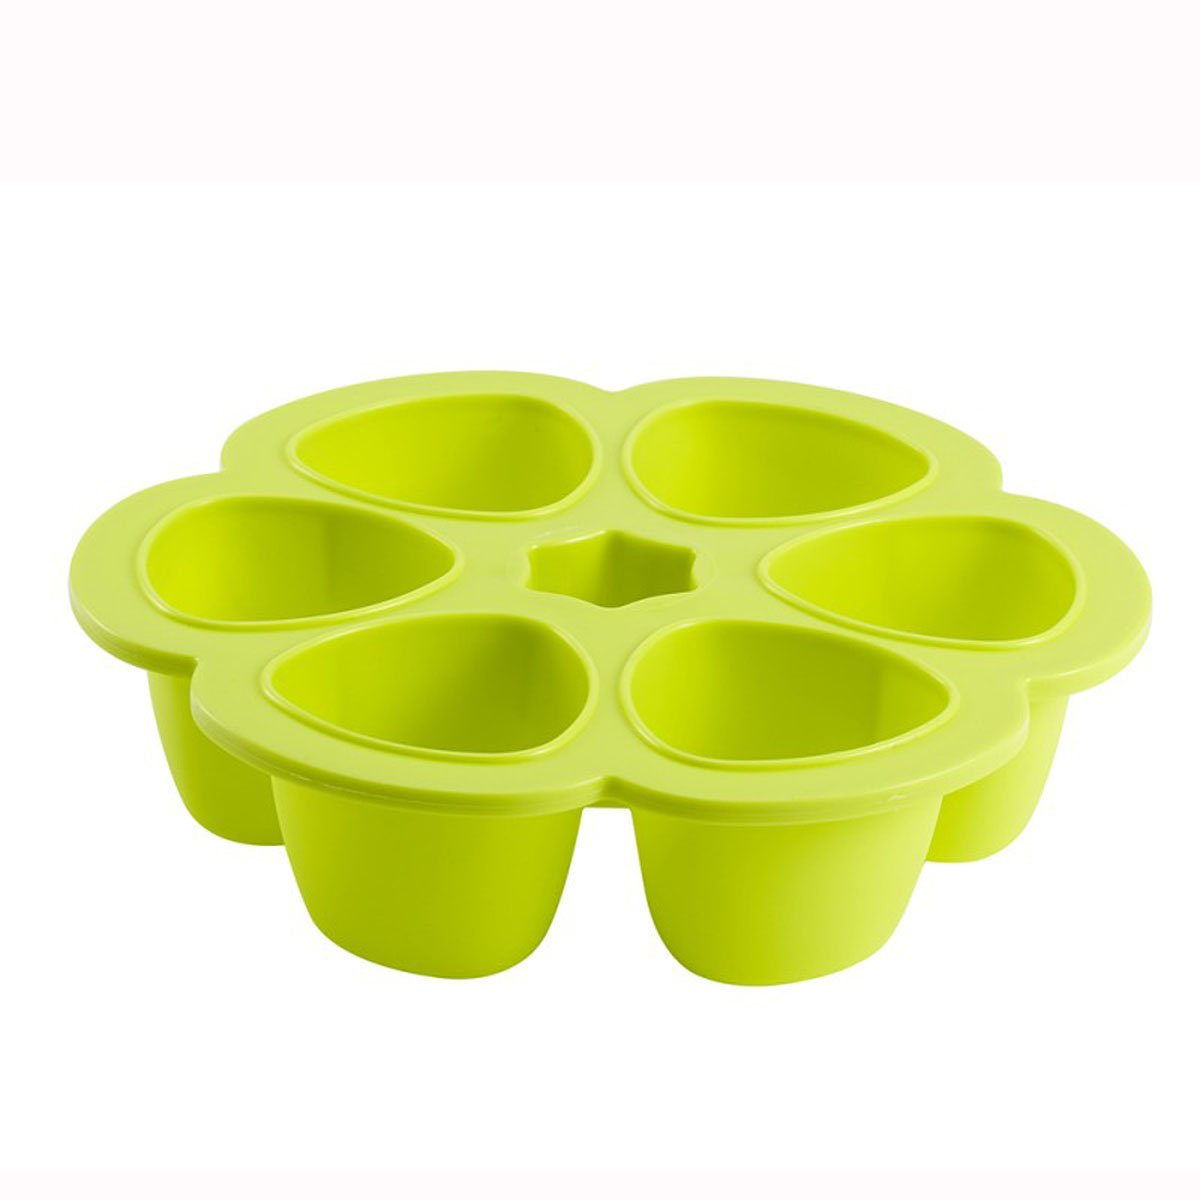 Beaba Multiportions Silicone 6 Storage Sections 150ml Neon